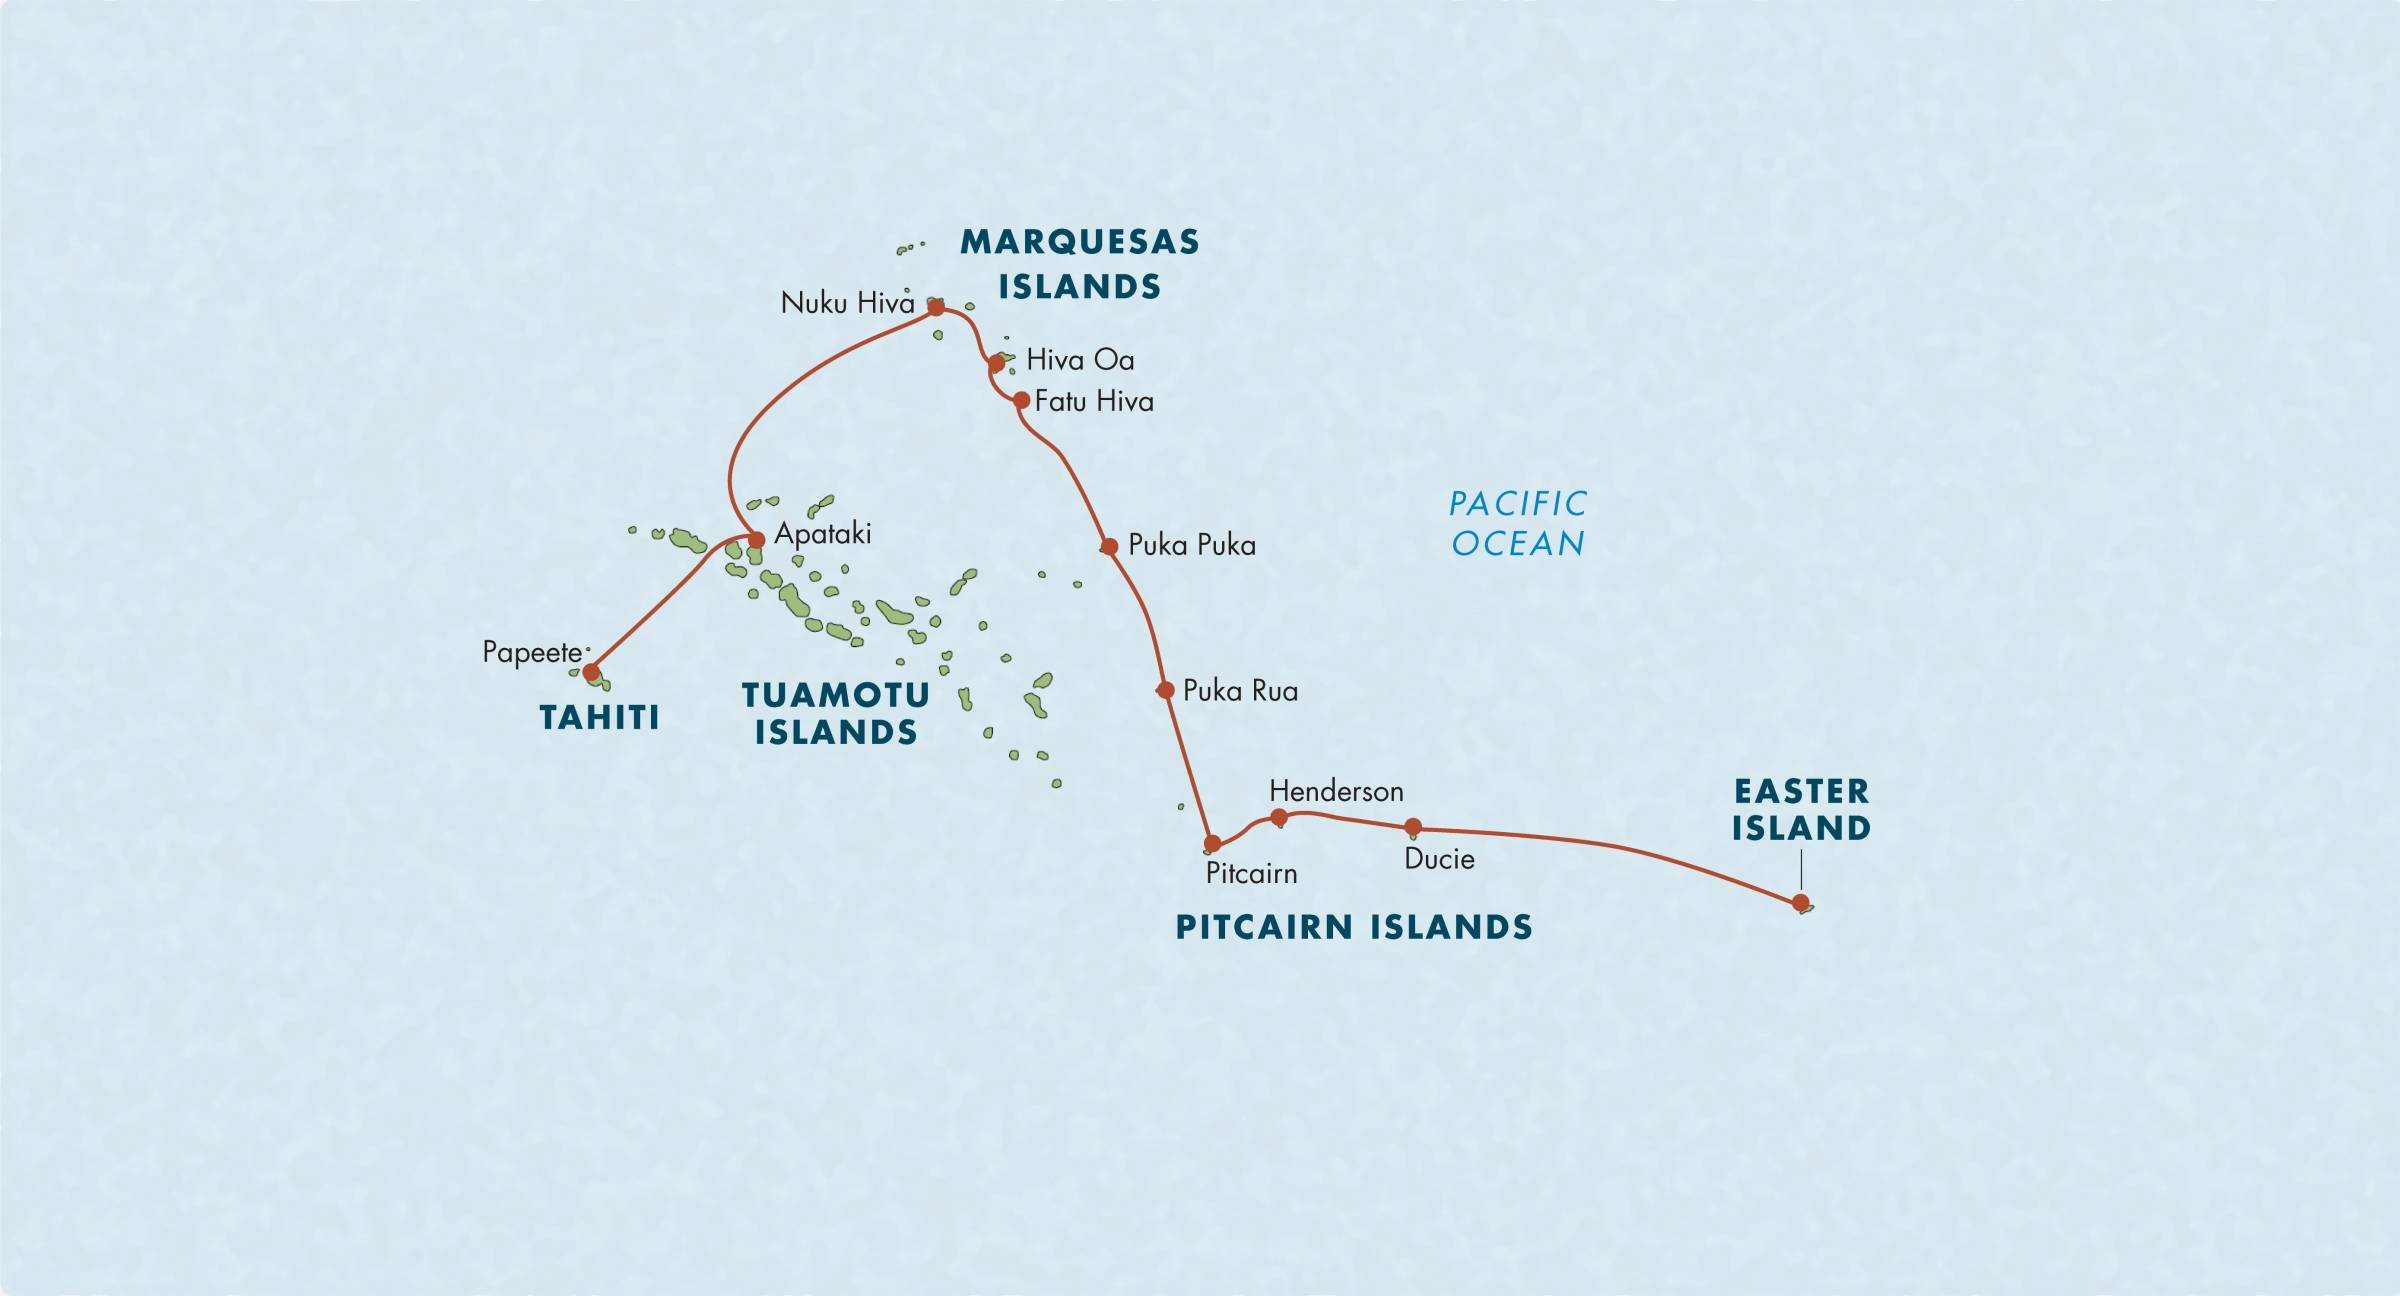 Map for Tahiti to Easter Island: Marquesas, Tuamotus & Pitcairns